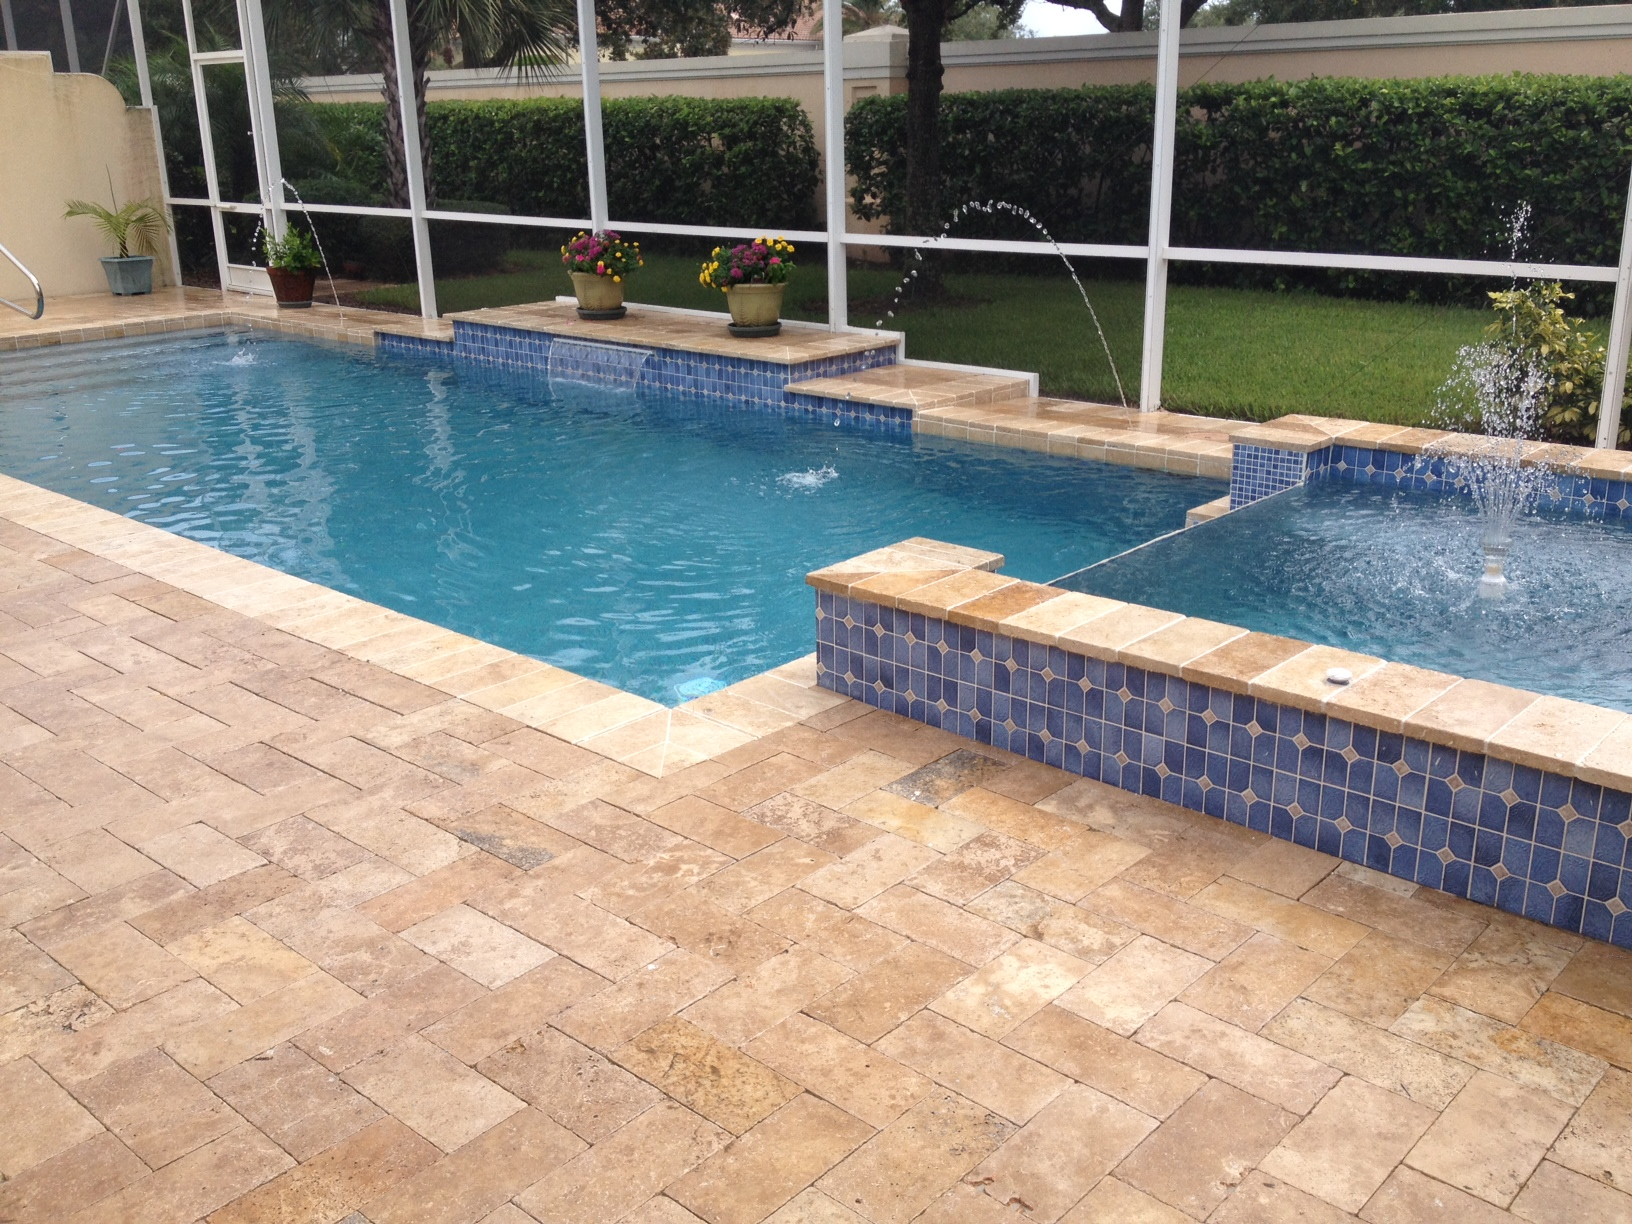 Travertine Pool Deck Falling In Love With Travertine Pavers Pool Deck  Homesfeed